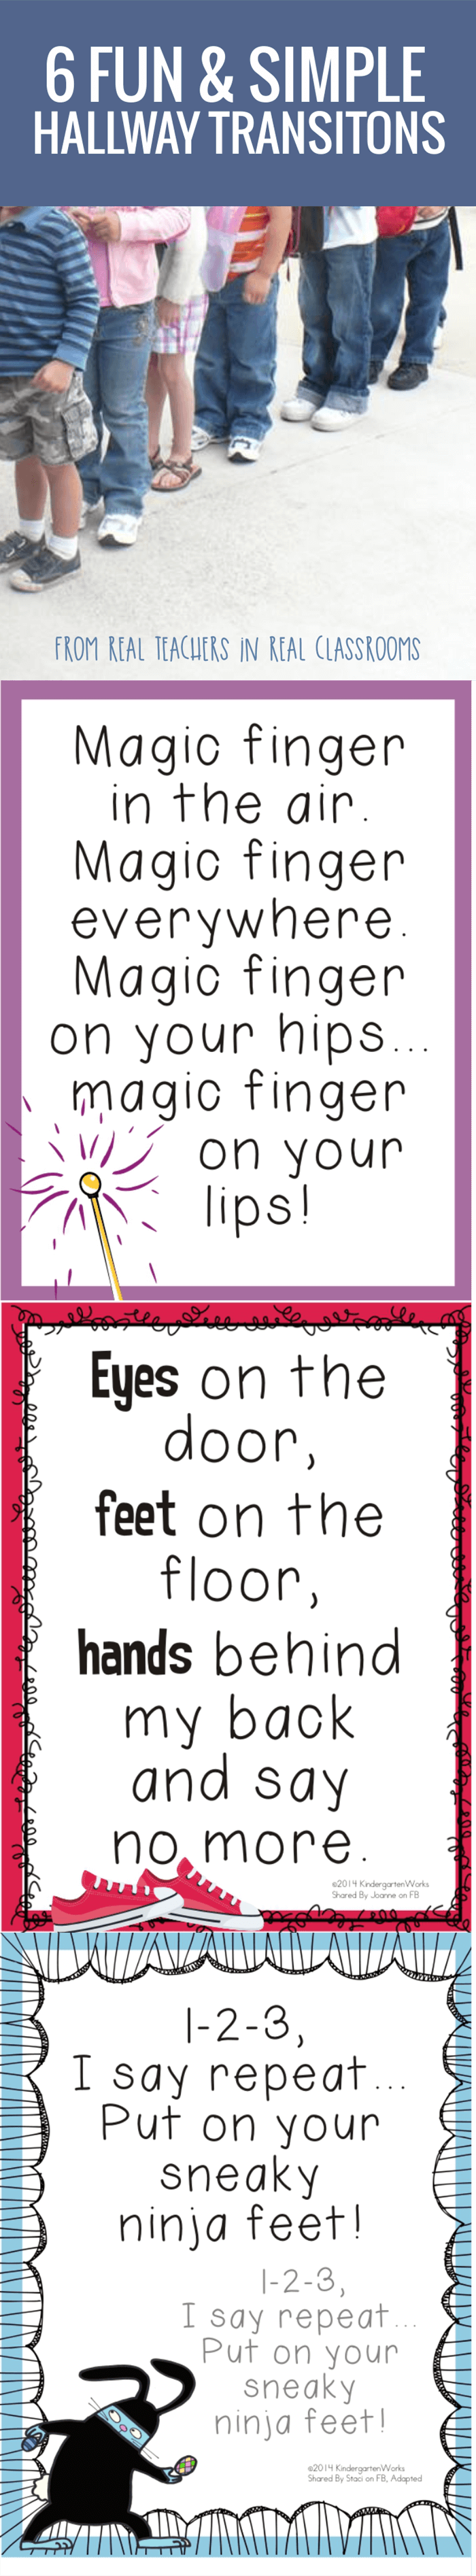 11 Fun and Simple Hallways Transitions for Kindergarten - free to print. Nice!